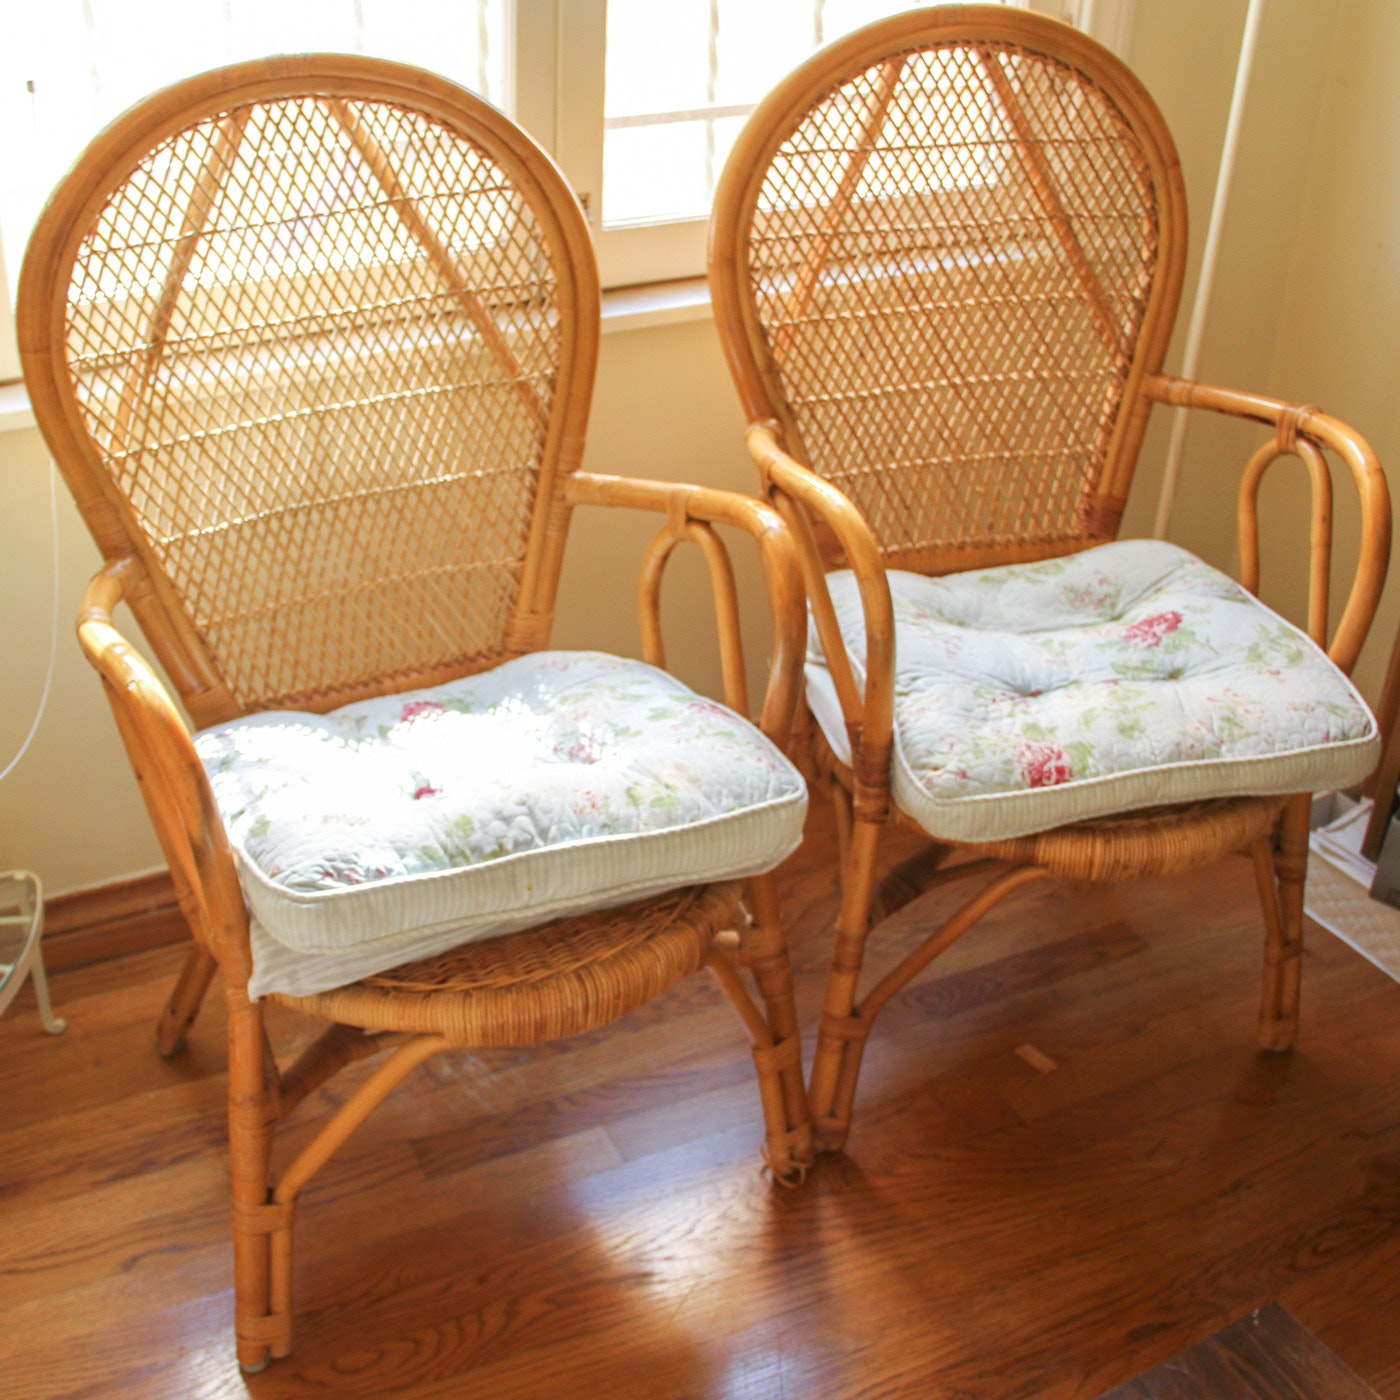 Pair of Bamboo and Rattan Balloon Back Chairs